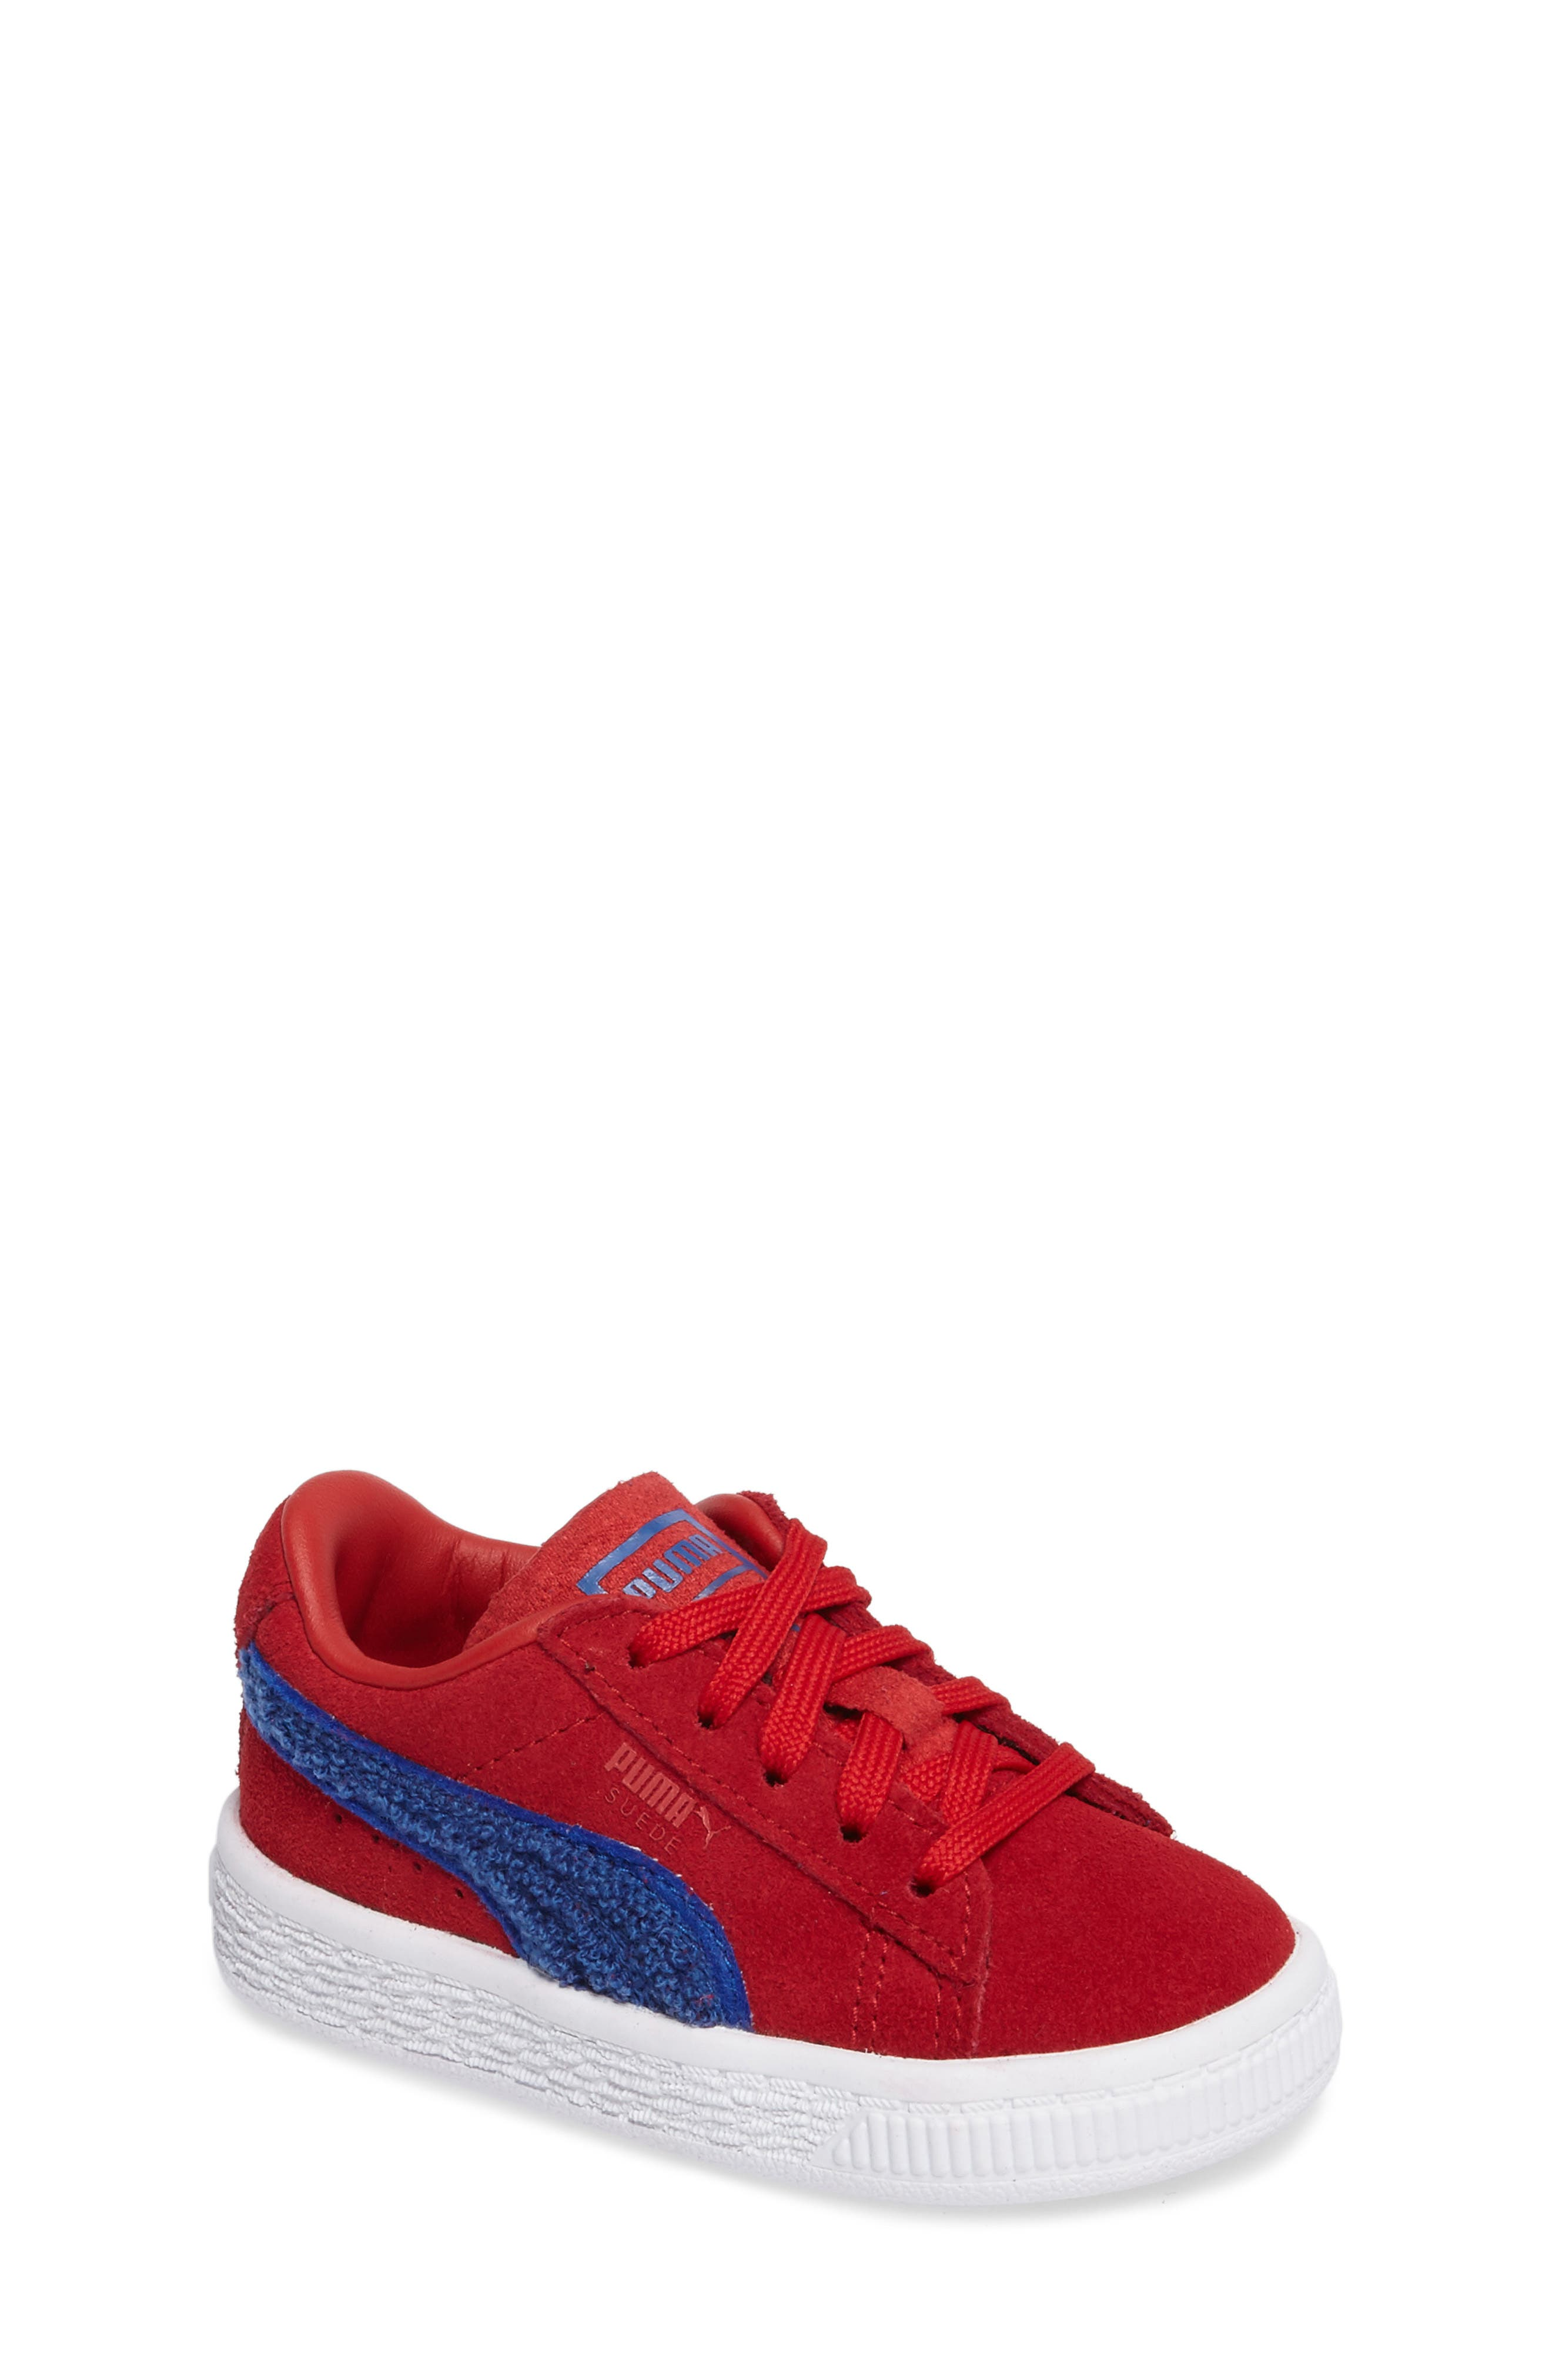 Main Image - PUMA Classic Terry Sneaker (Baby, Walker & Toddler)